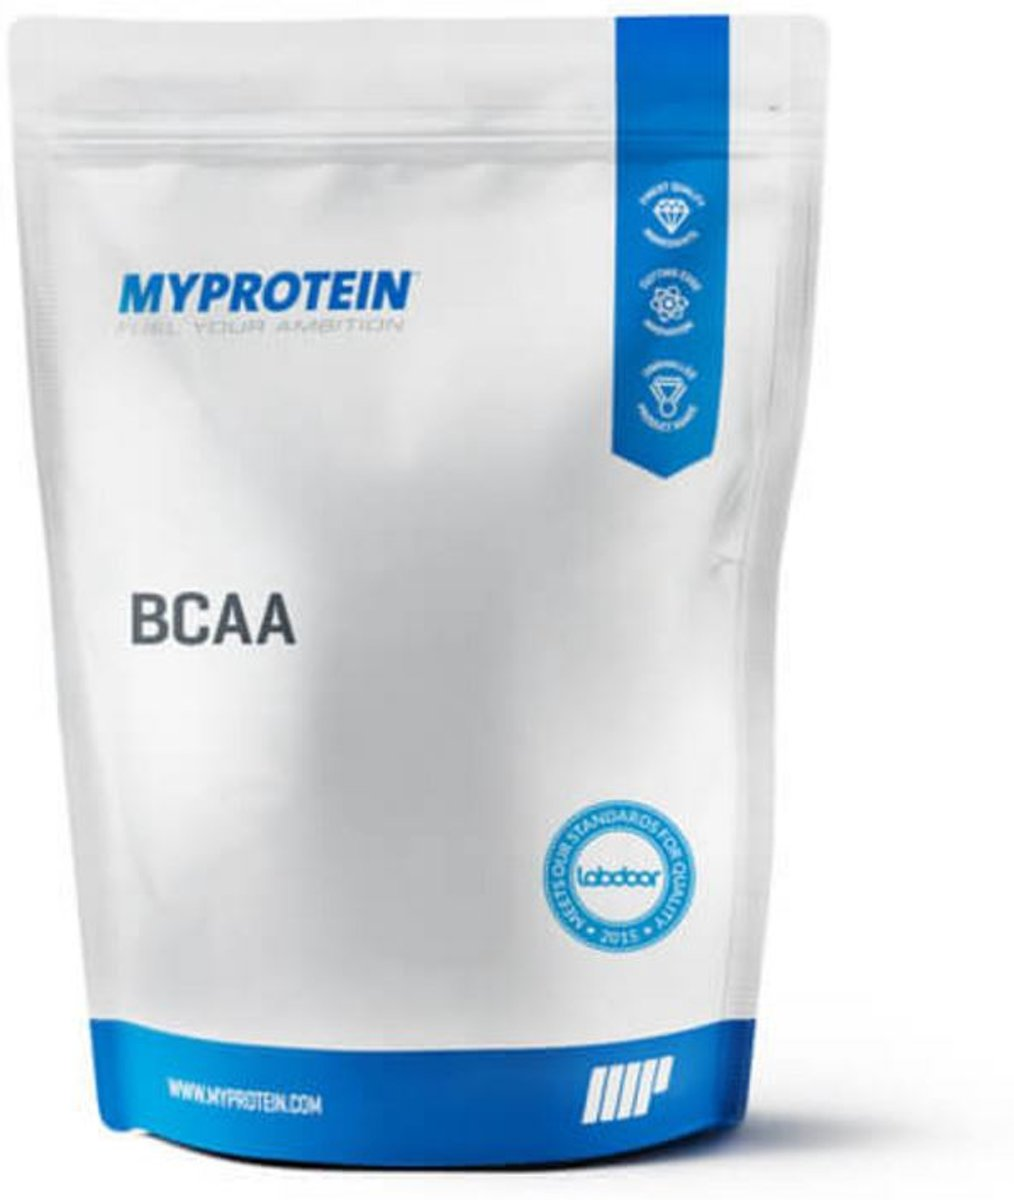 BCAA Branched Chain Amino Acids - 250G - MyProtein kopen